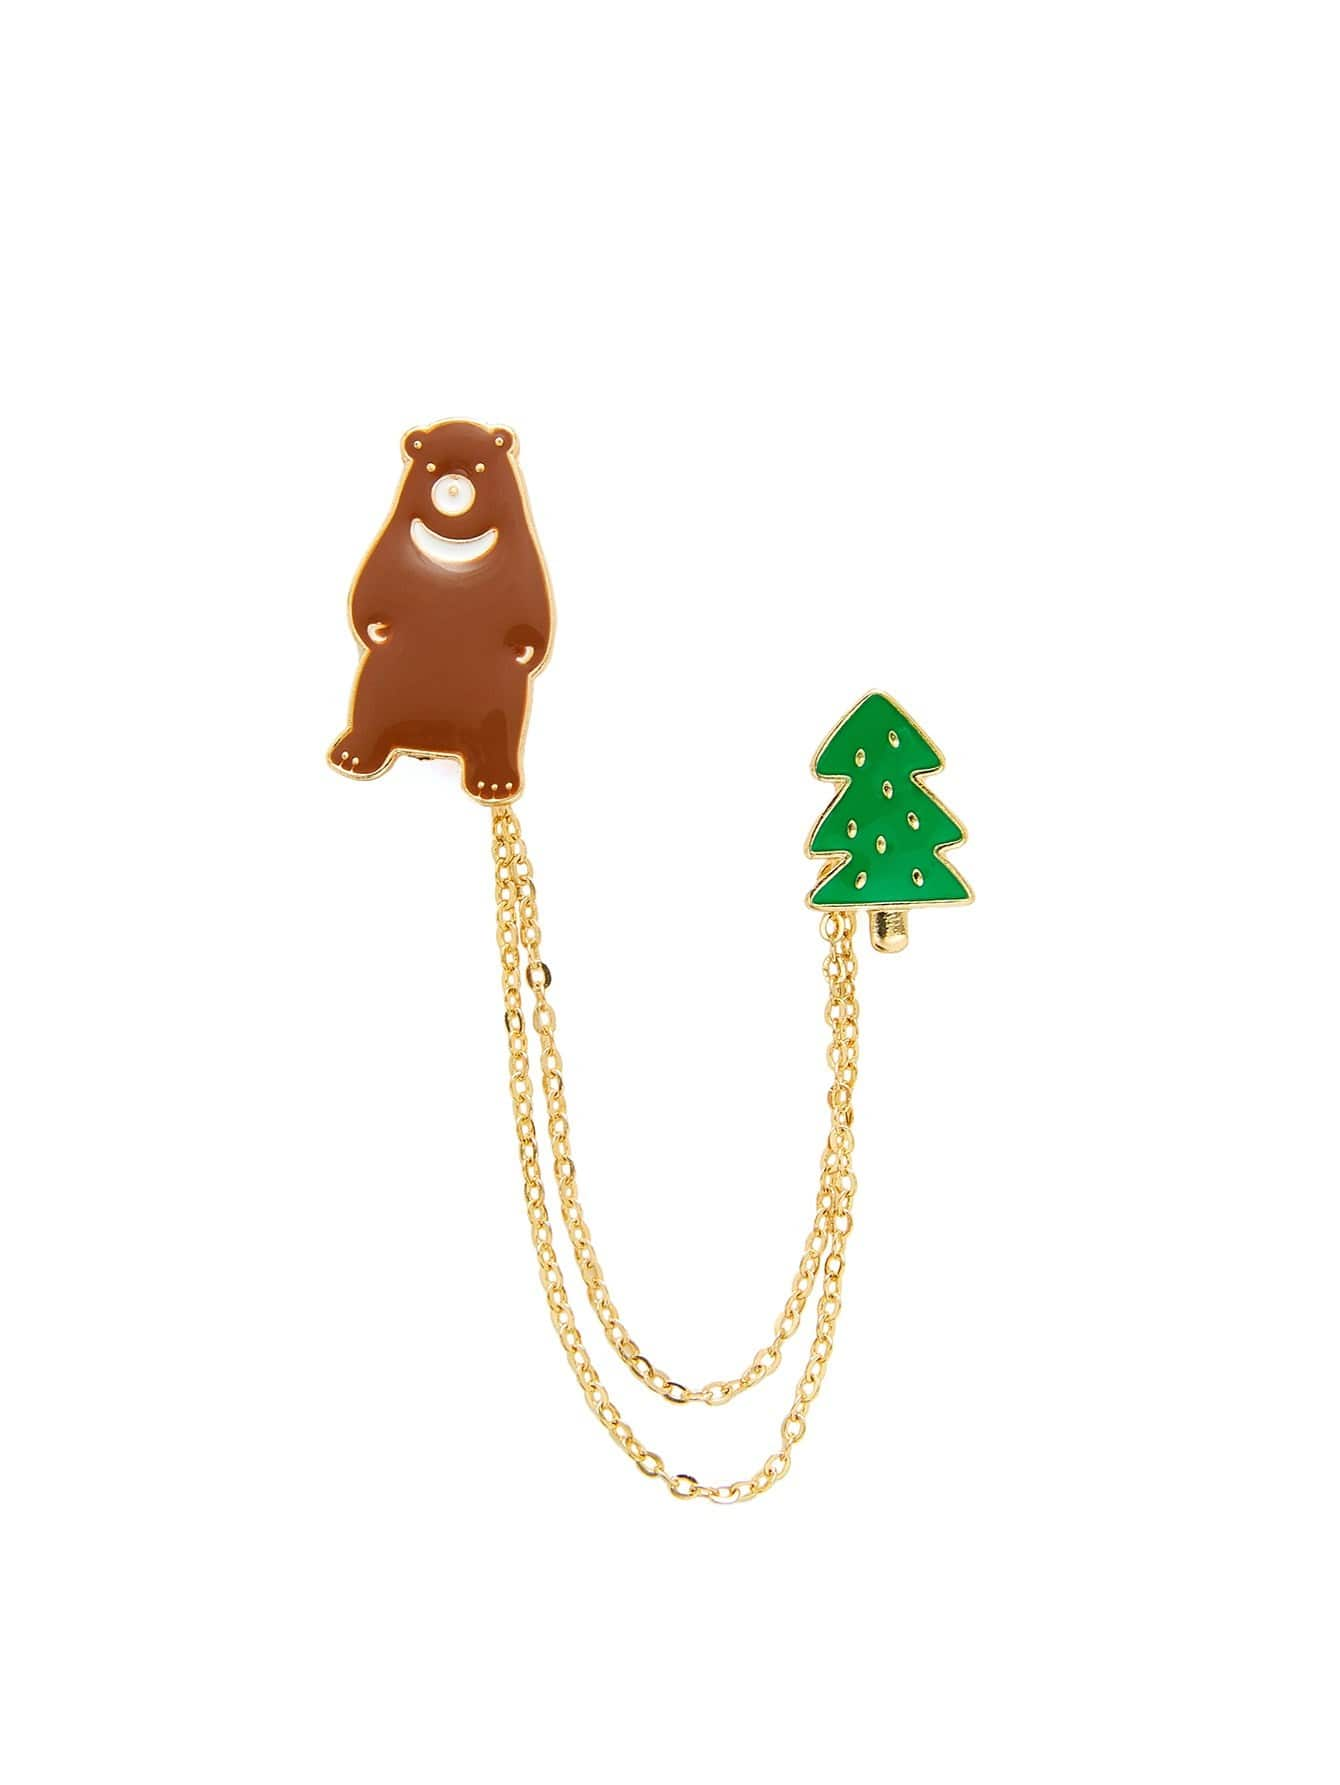 Image of Bear & Tree Design Chain Brooch